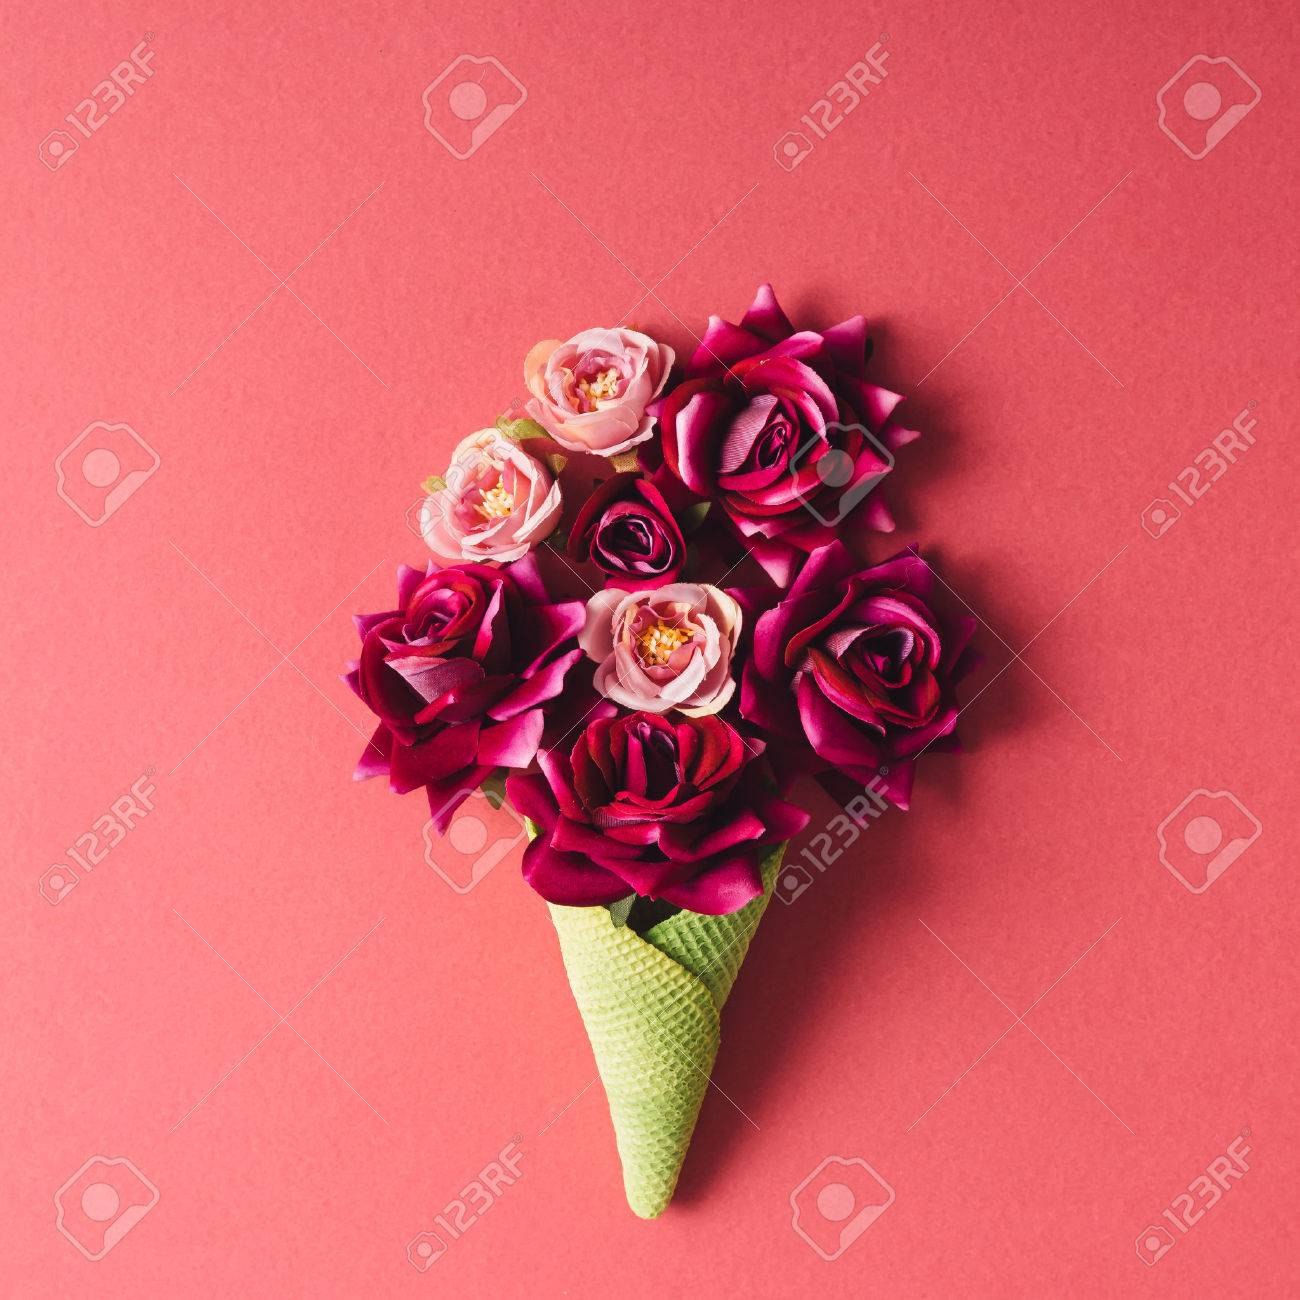 Purple Flowers And Green Icecream Cone On Pink Background Flat Lay Stock Photo